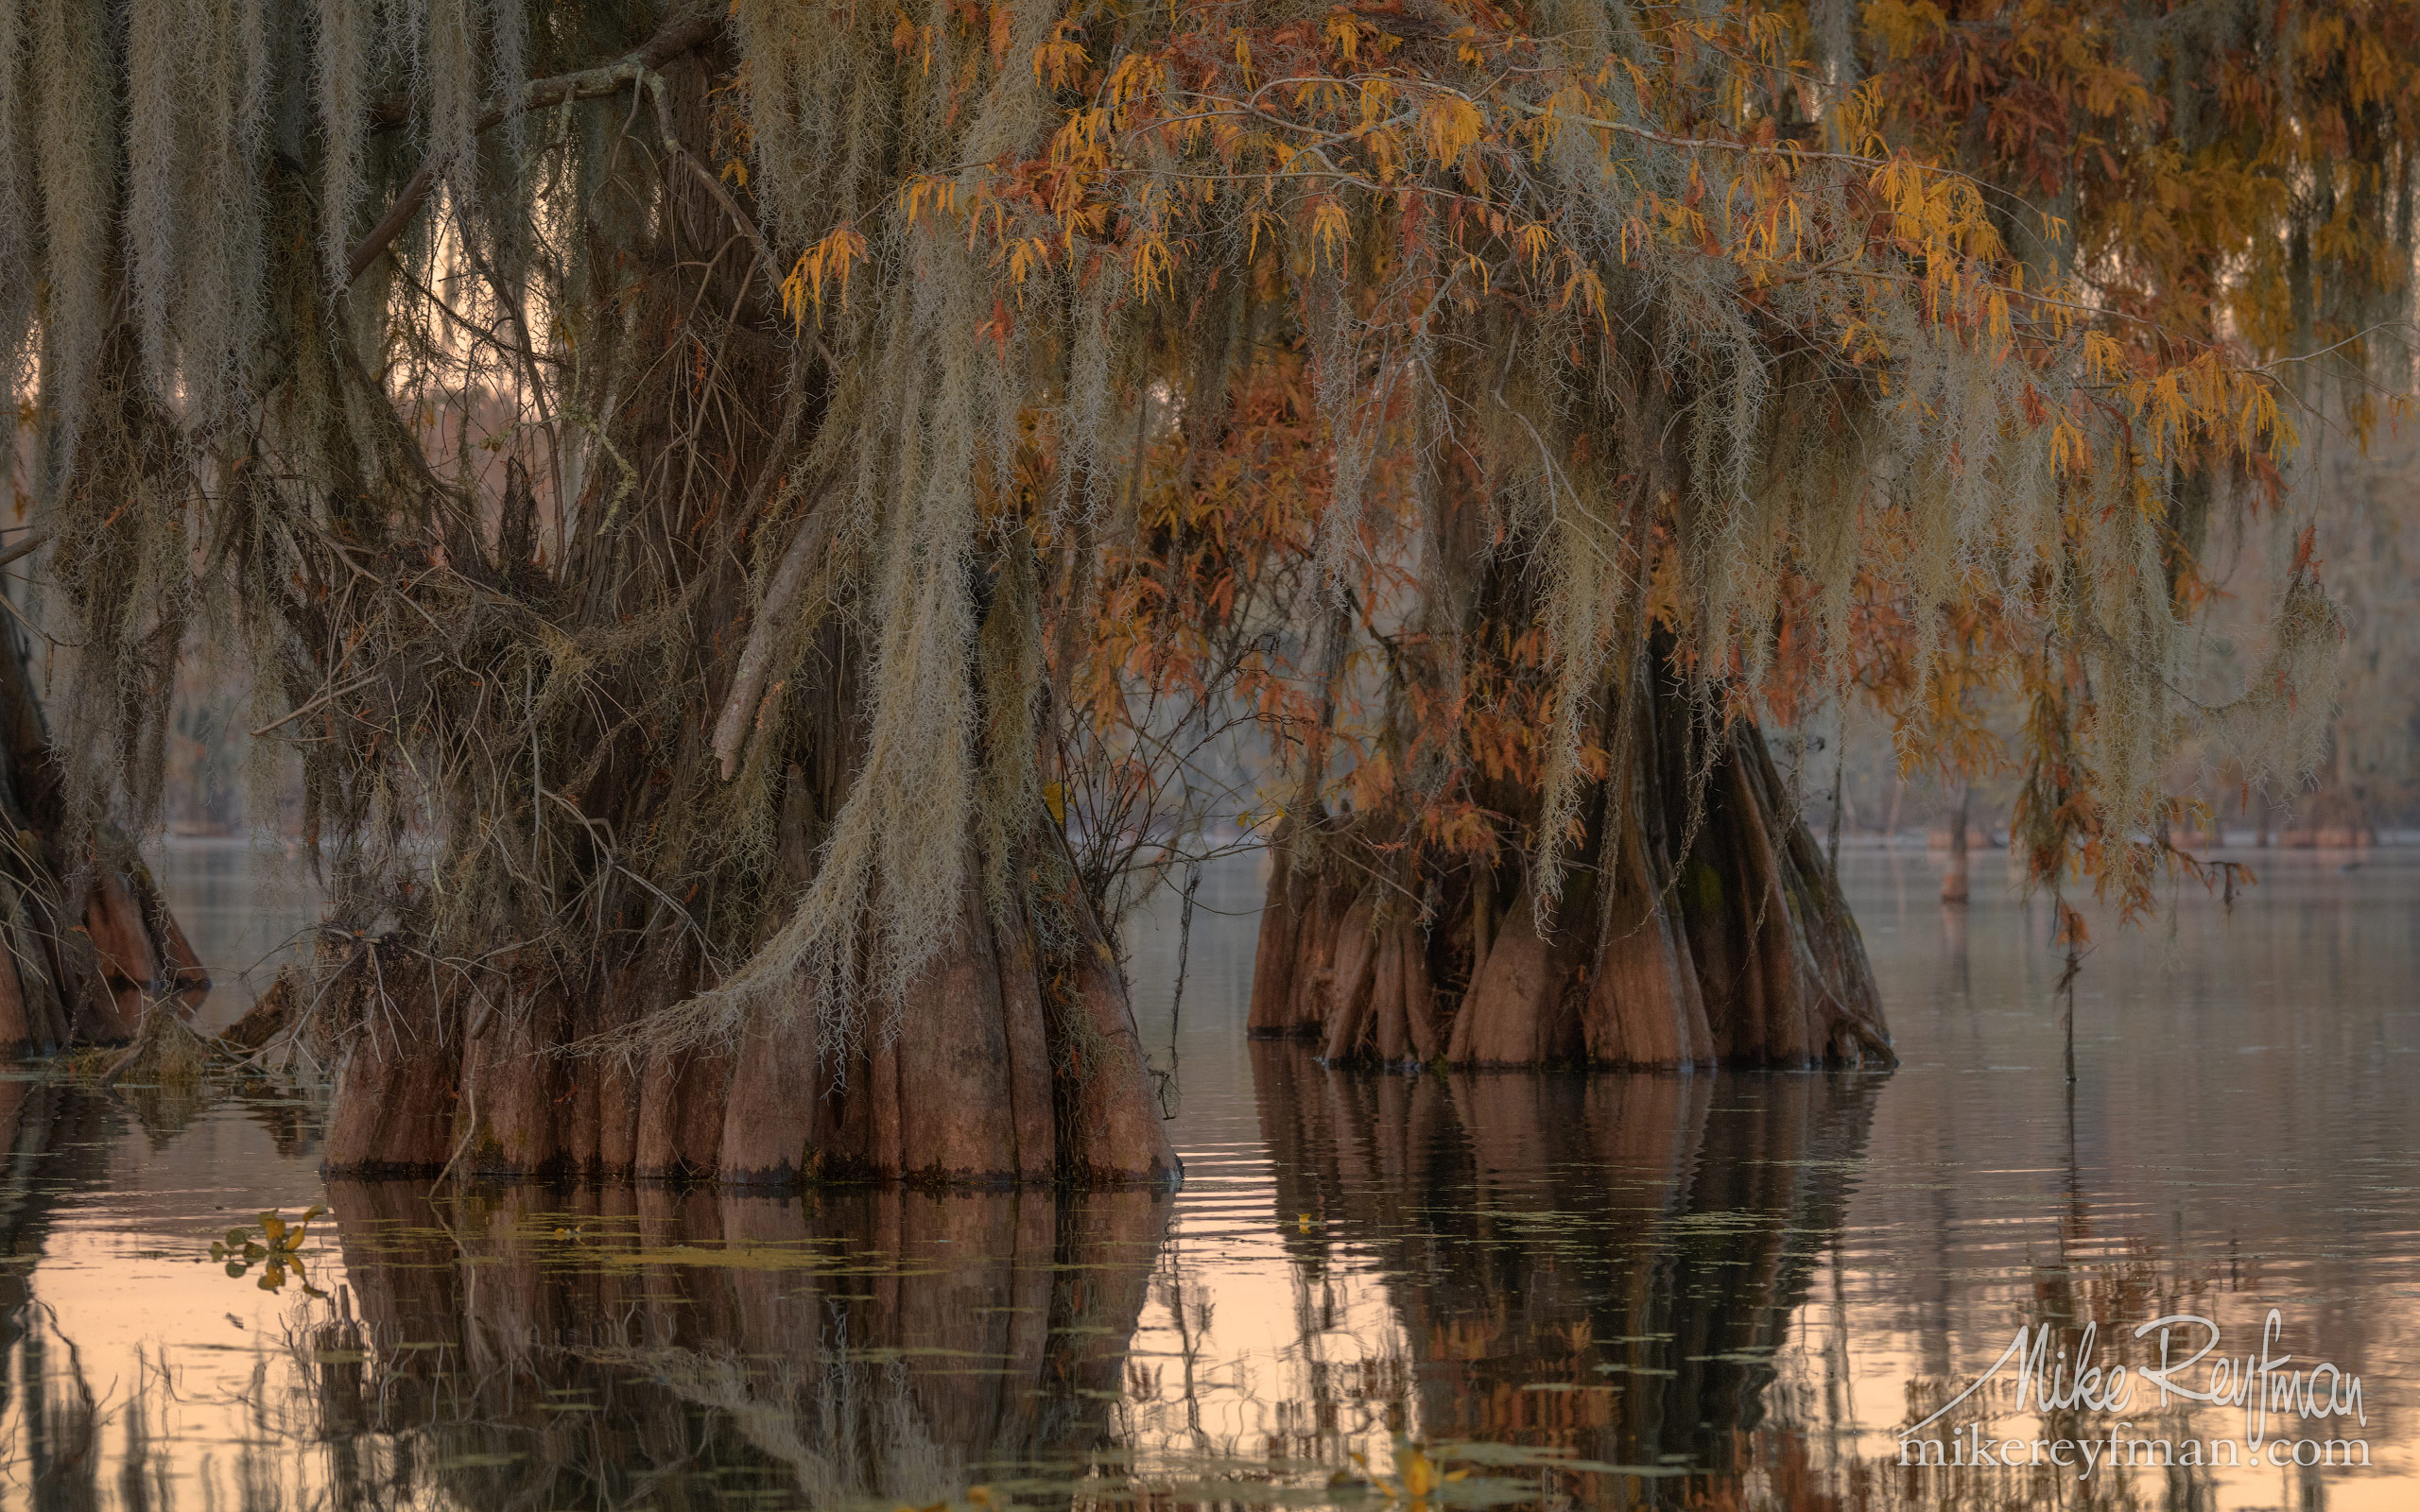 Spanish Moss on the Bald Cypress trees. Lake Fausse, Louisiana, US 026-LT1-50A4690.jpg - Bold Cypress and Tupelo Trees in the swamps of Atchafalaya River Basin. Caddo, Martin and Fousse Lakes. Texas/Louisiana, USA. - Mike Reyfman Photography